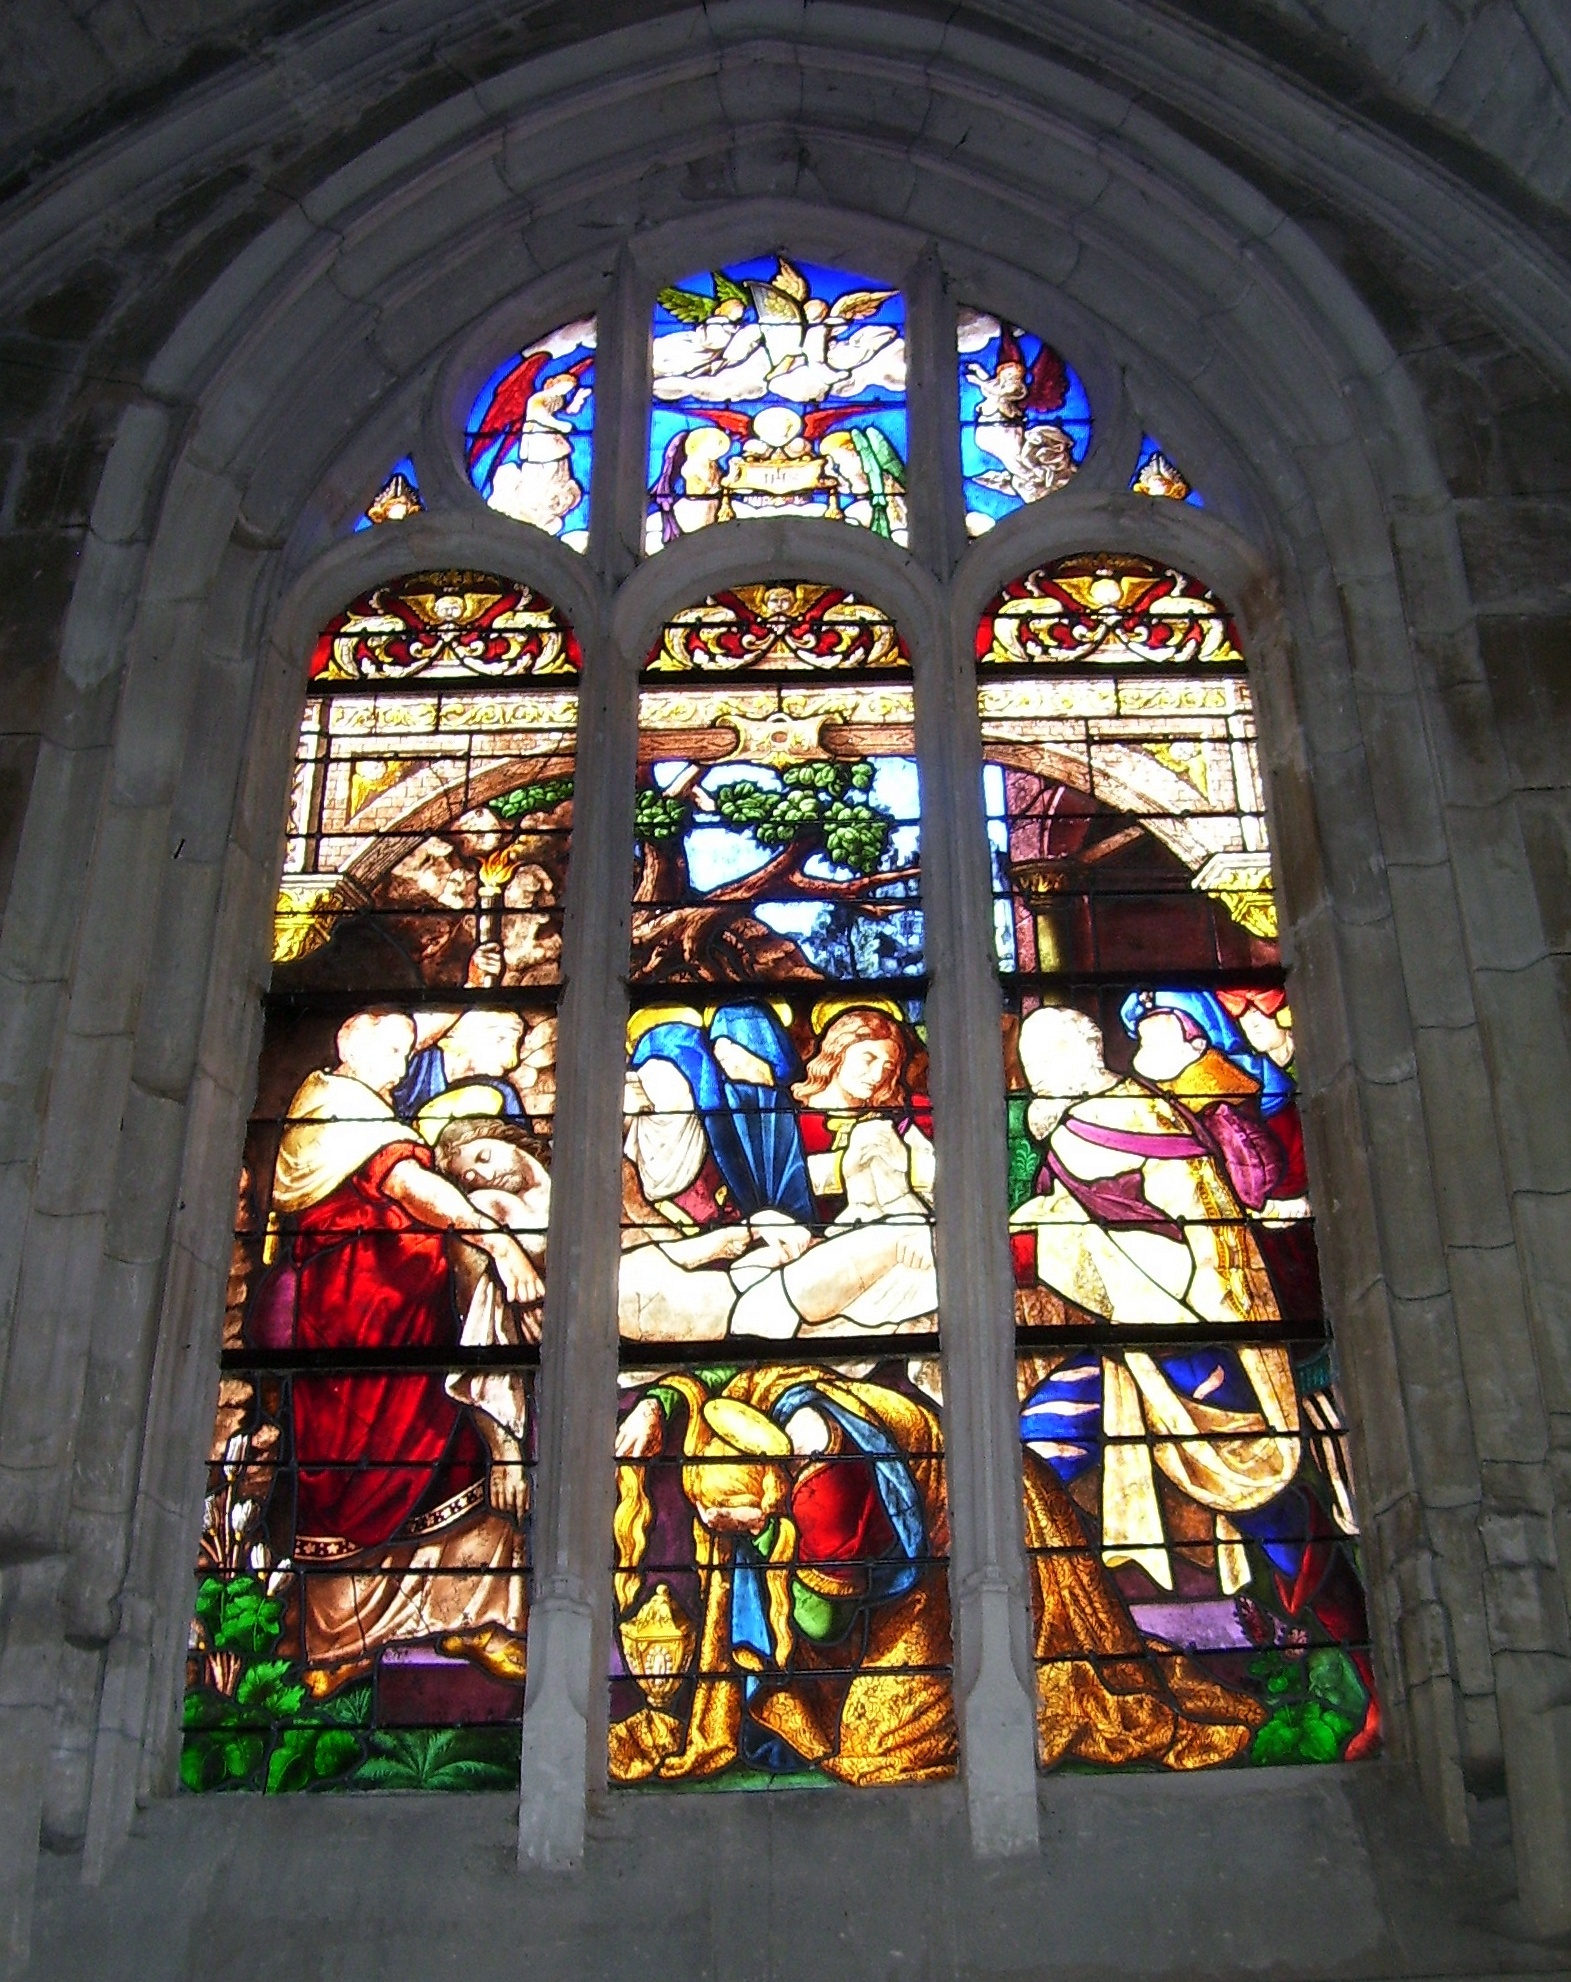 stained-glass windows, kirchenfenster, vitrail